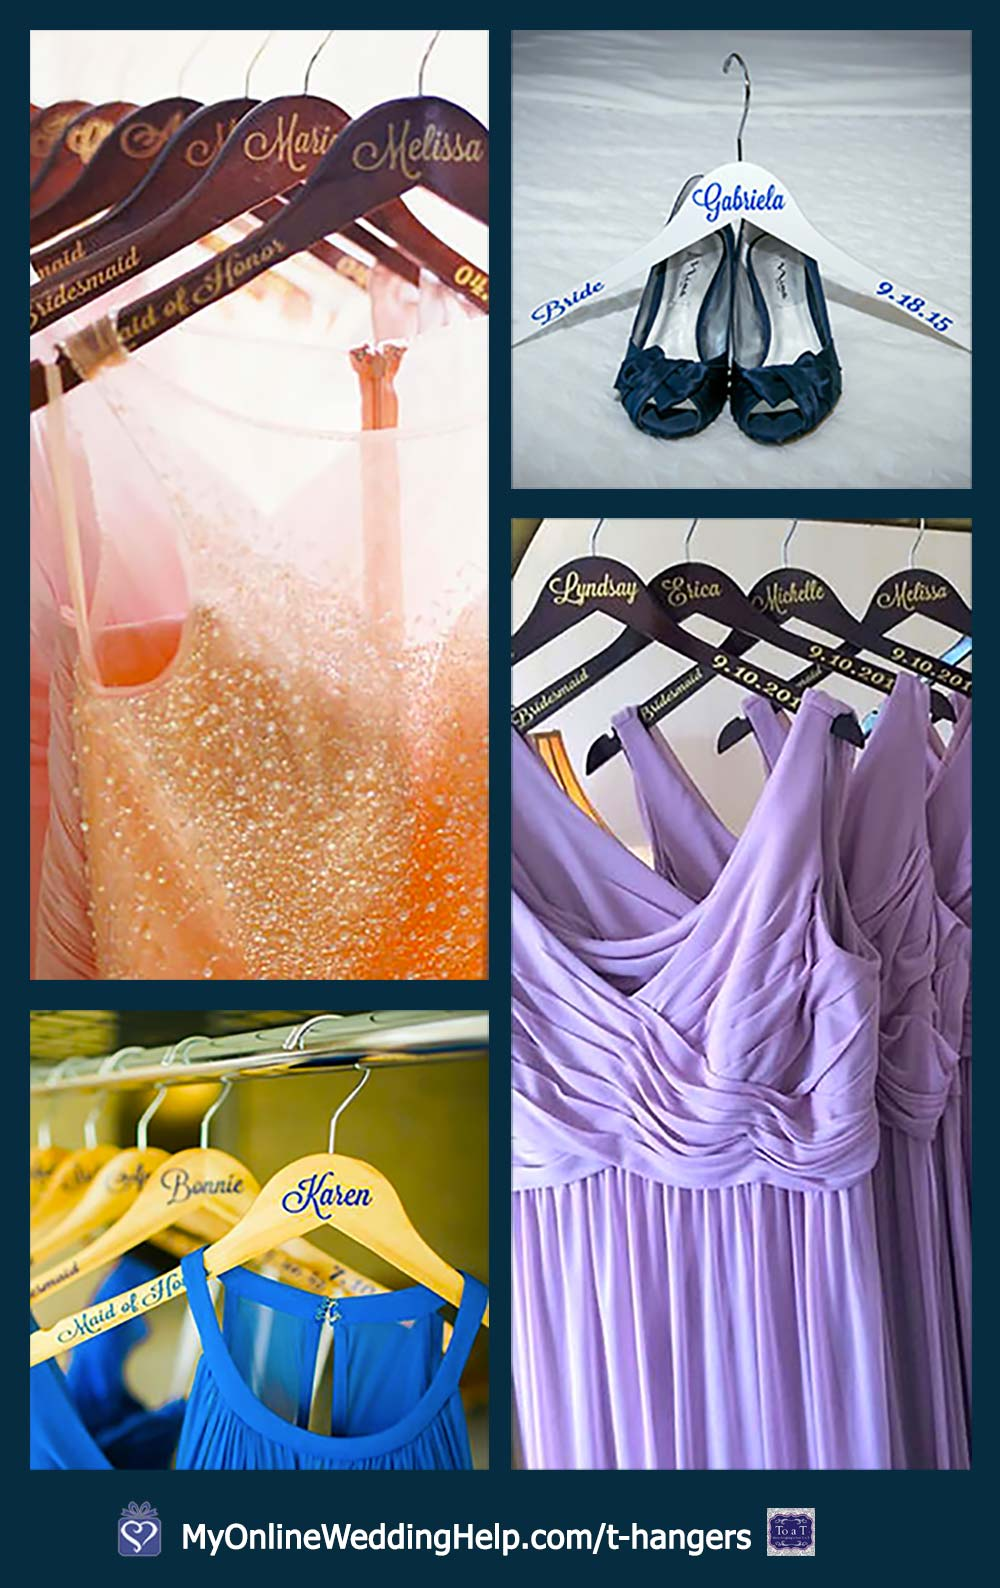 Personalized wedding hangers for bridesmaids and wedding party.